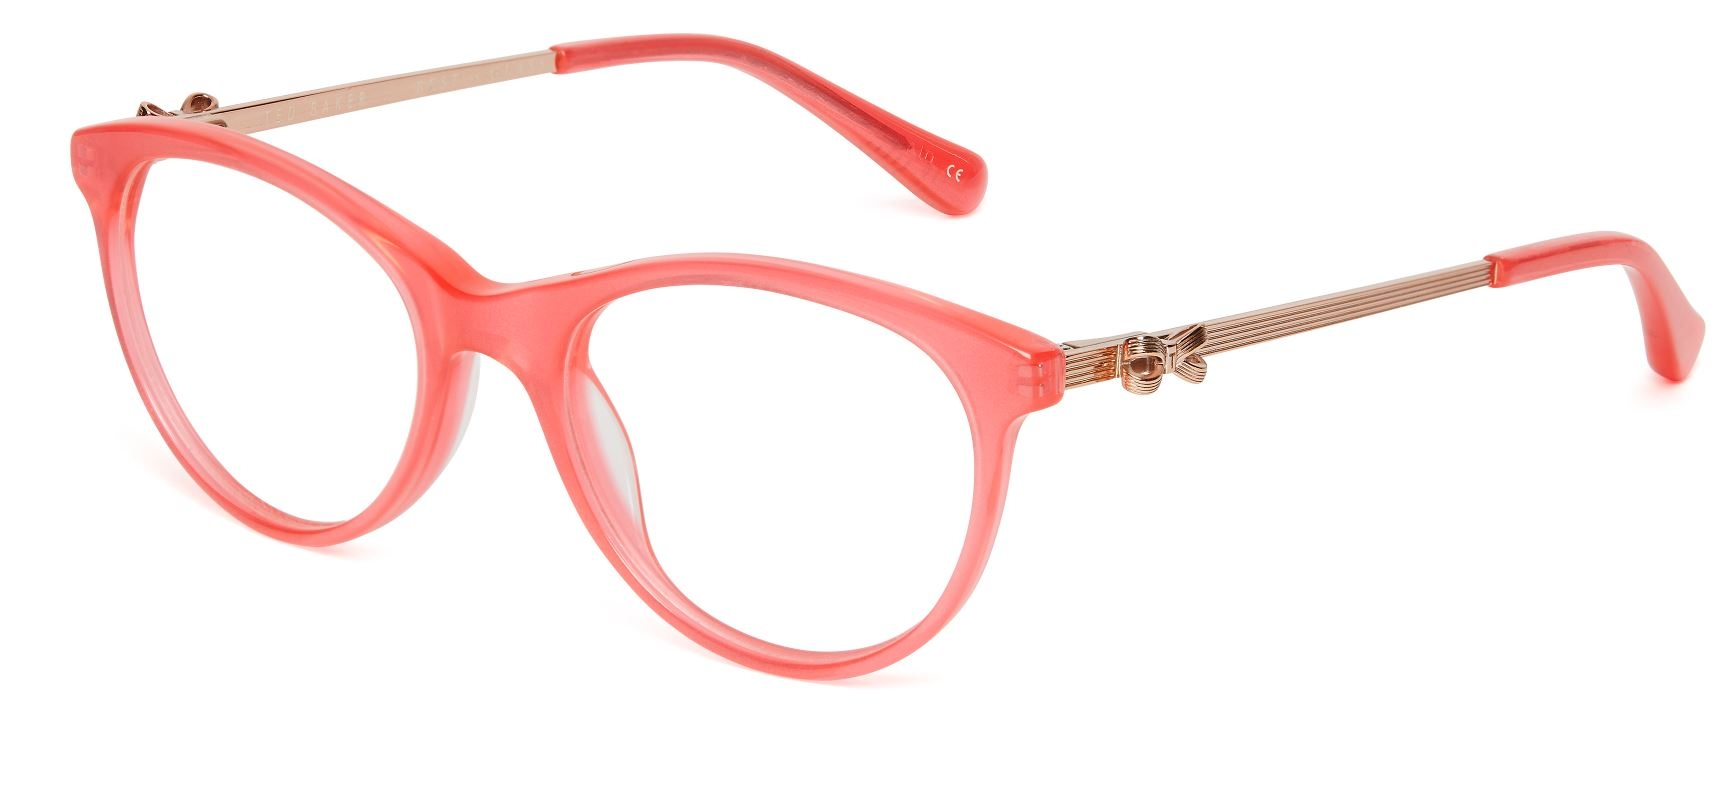 Ted Baker Brille B961 207